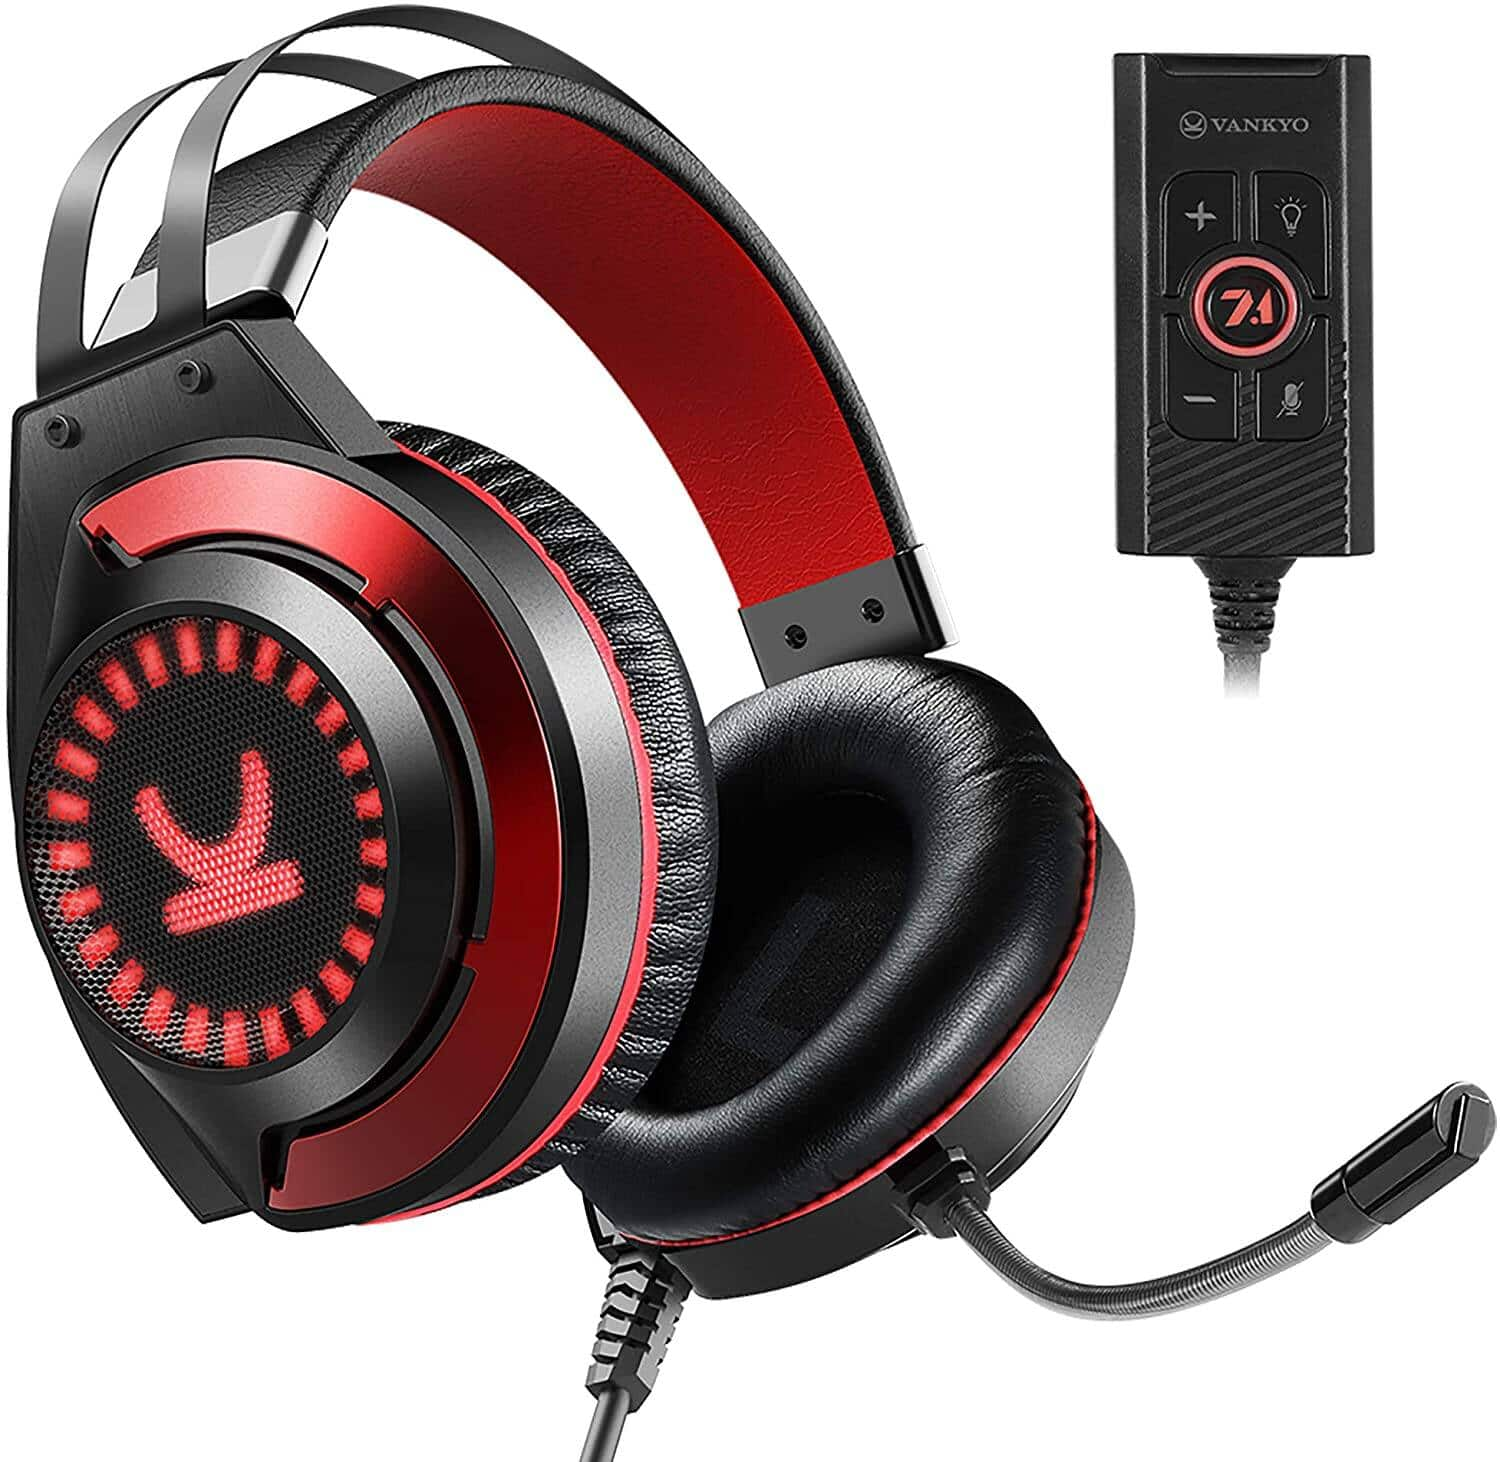 VANKYO CM7000 7.1 Surround Sound Gaming Headset w/ Noise Canceling Mic